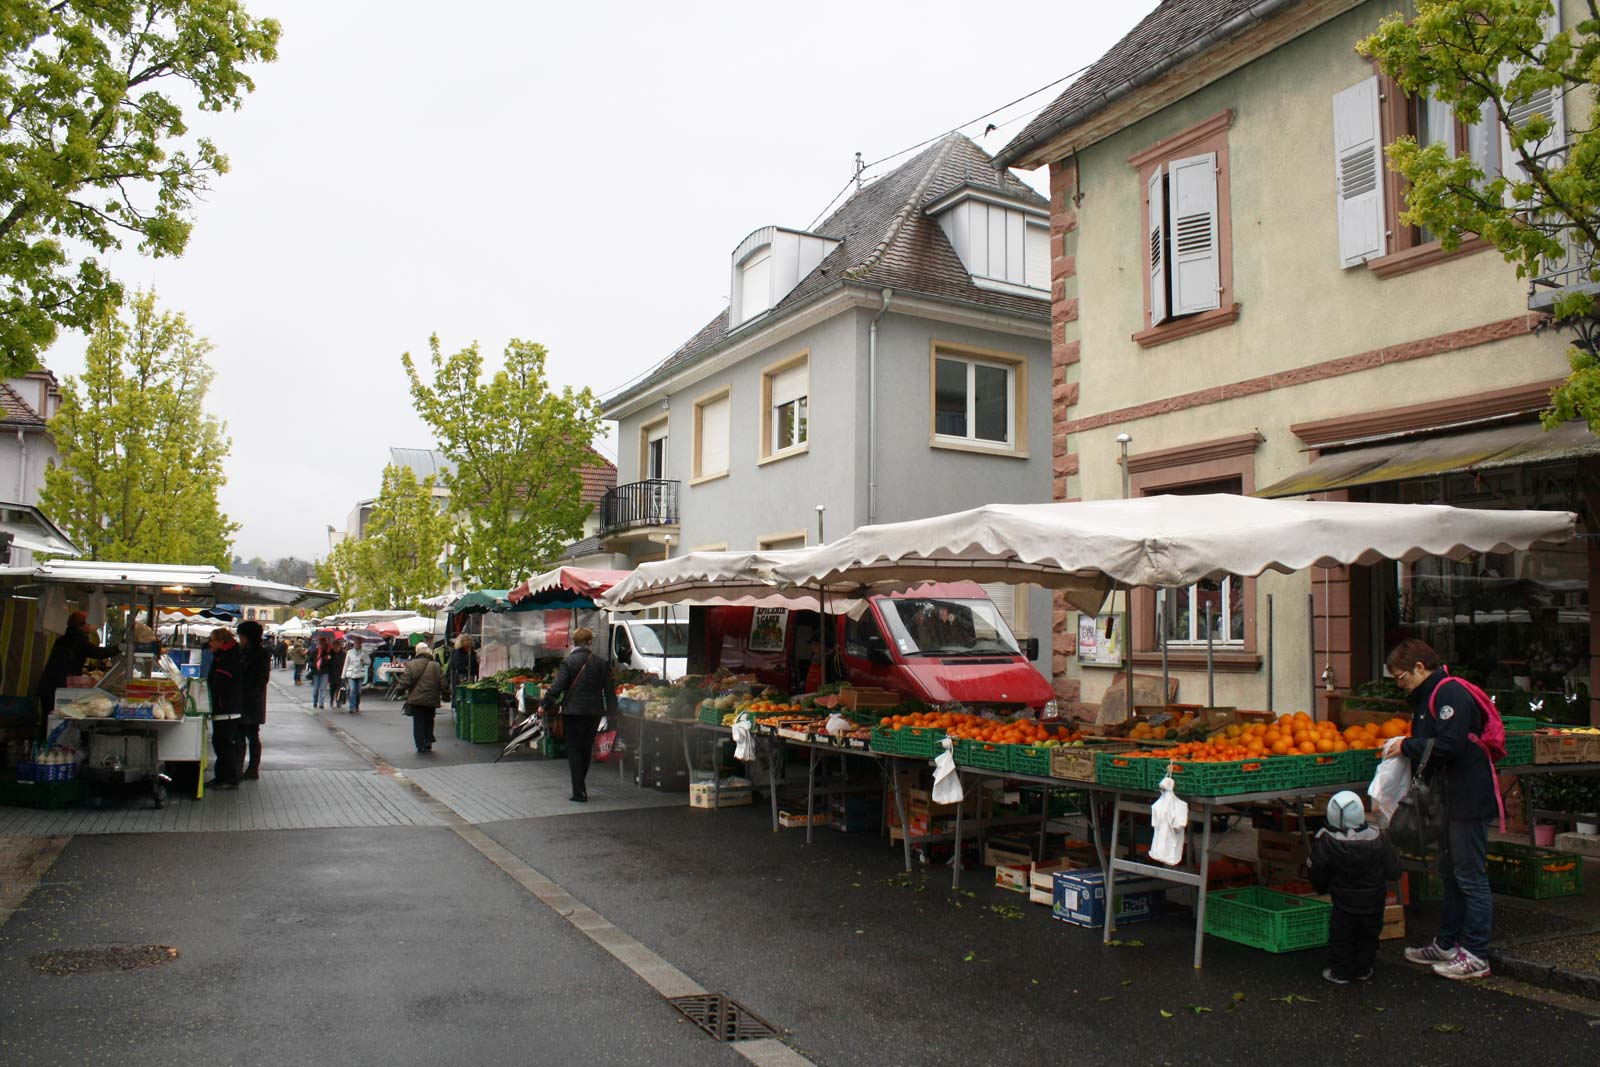 Traditional weekly market